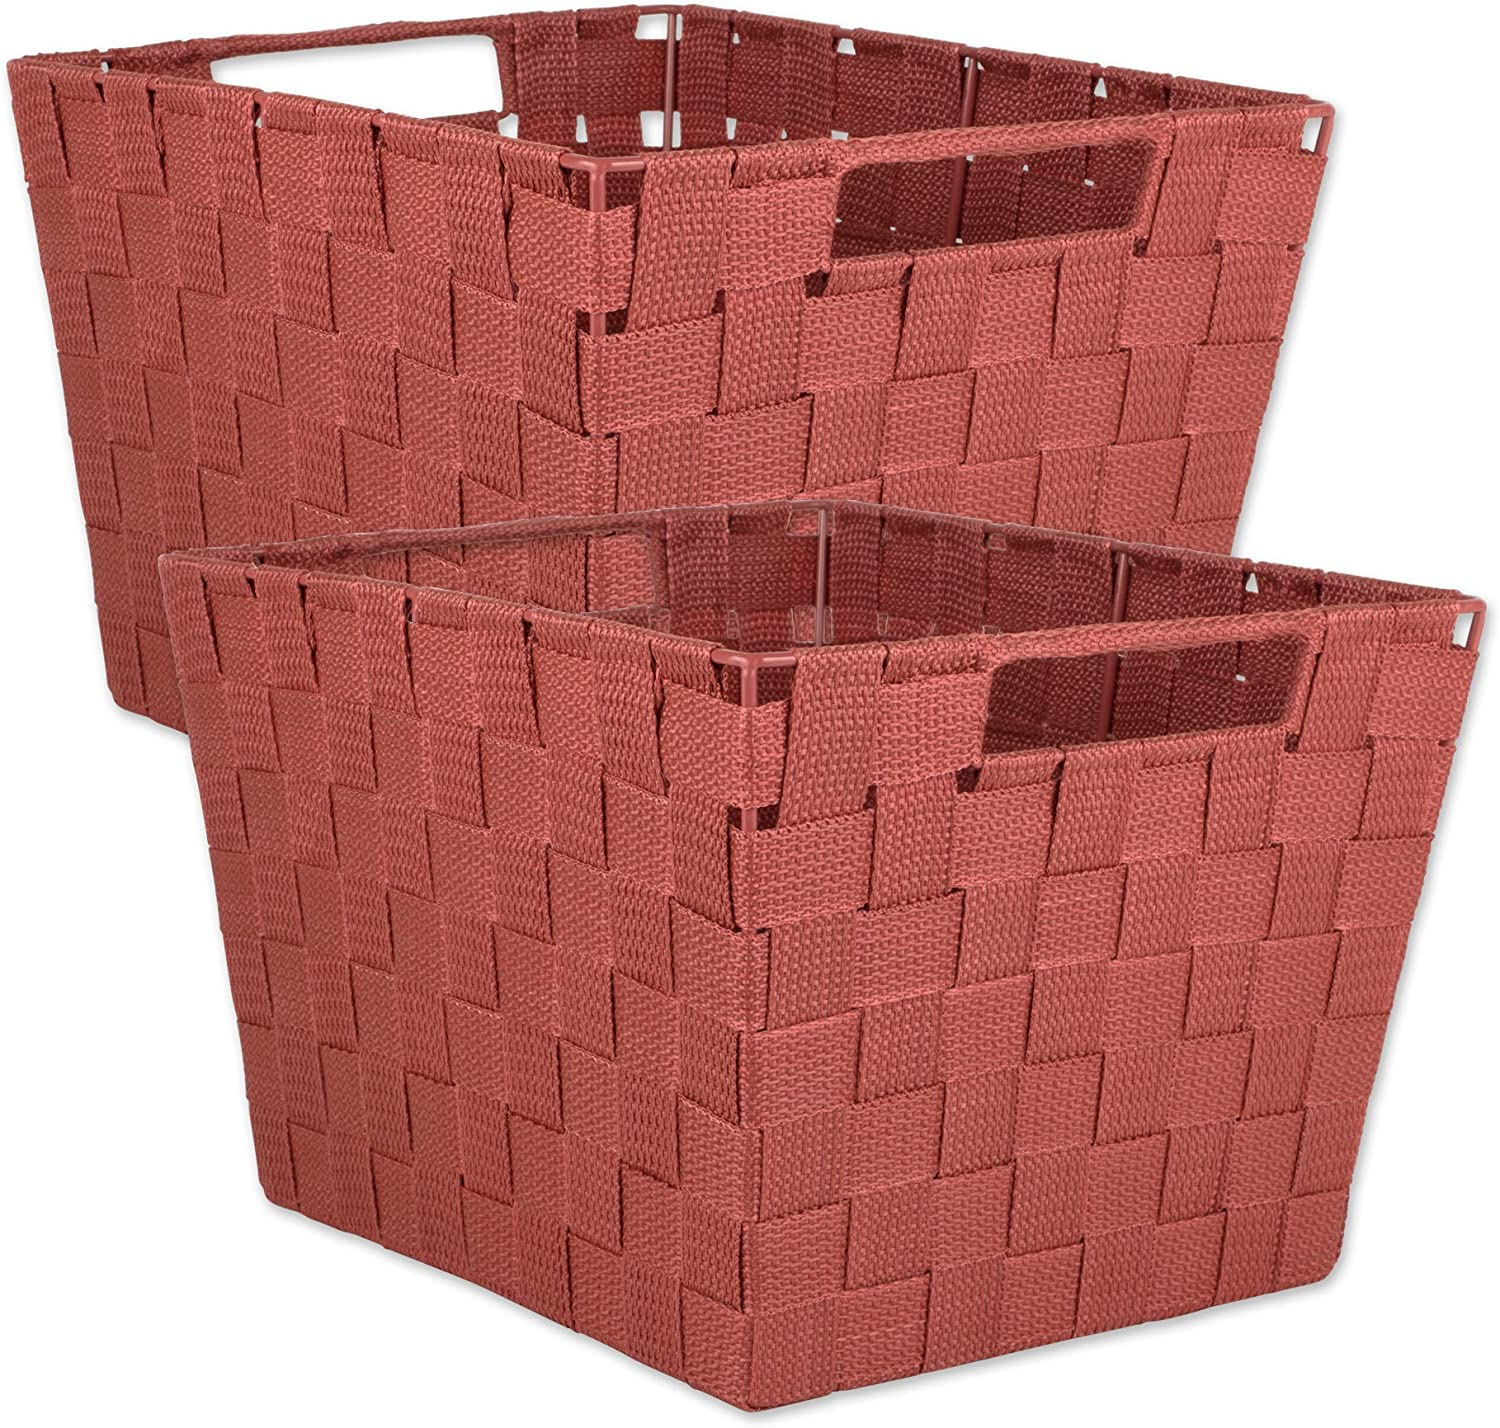 """DII Durable Trapezoid Woven Nylon Storage Bin or Basket for Organizing Your Home, Office, or Closets (Basket - 12x10x8"""") Rust - Set of 2"""